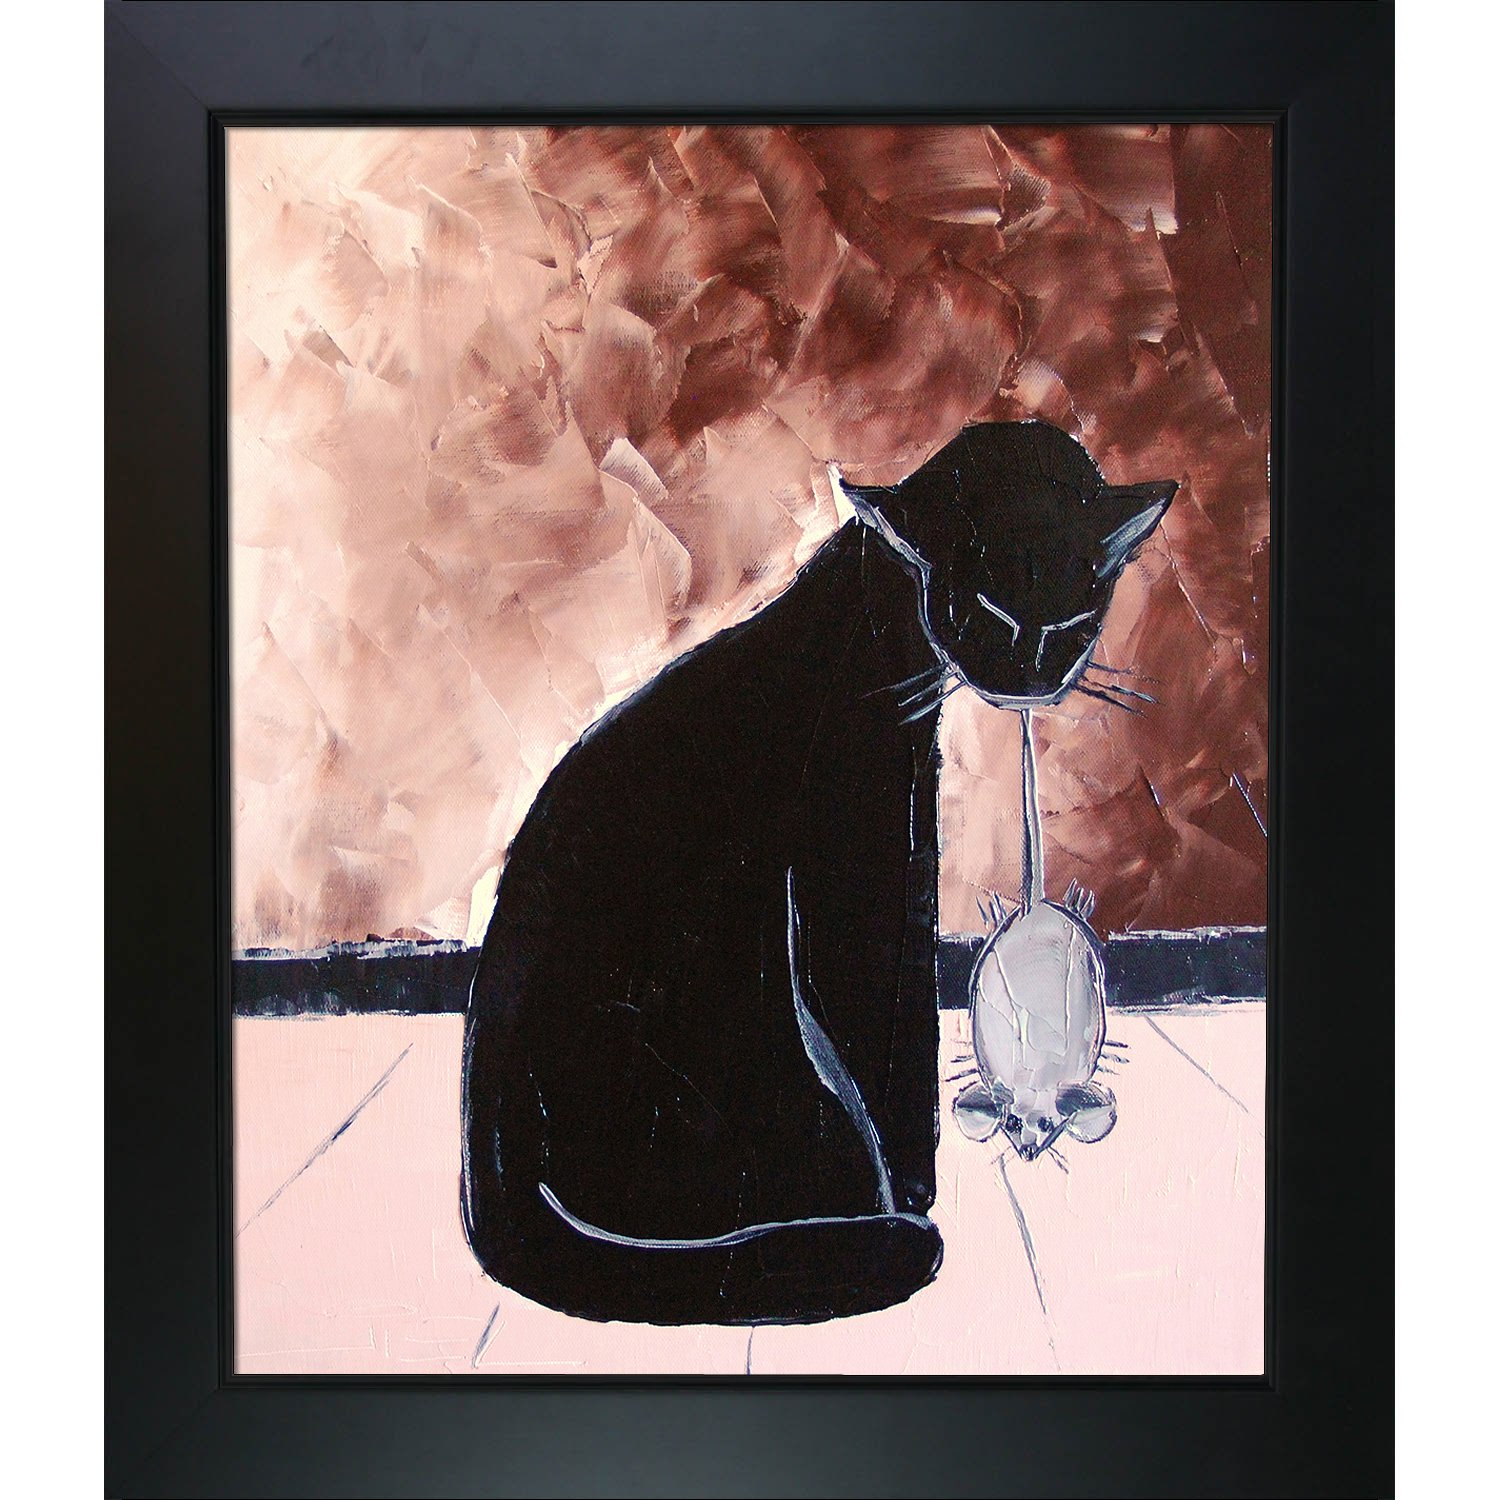 overstockArt ArtistBe Black Cat with His Mechanic Mouse by De Jiel with New Age Wood Frame Black